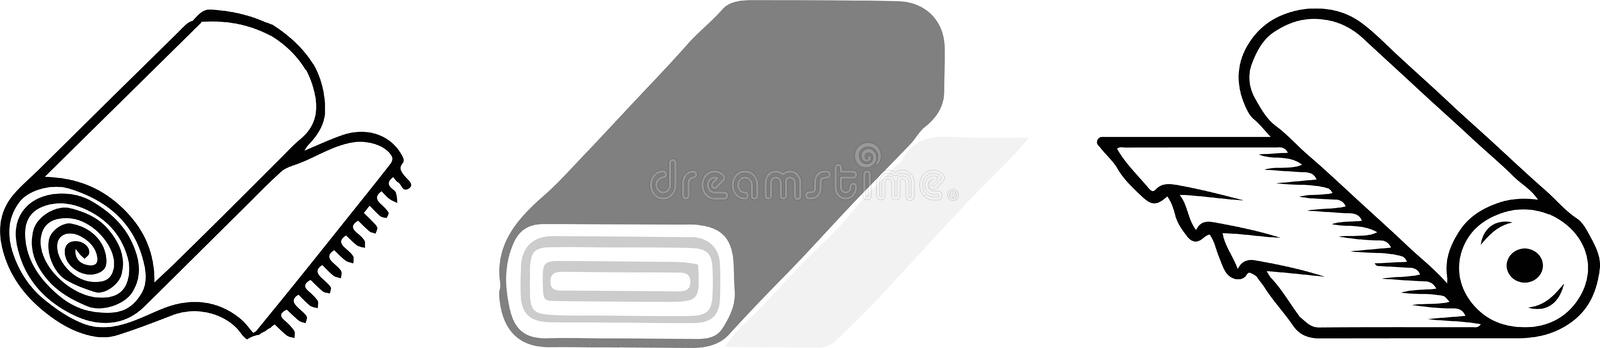 Roll of fabric icon on white background.  stock illustration